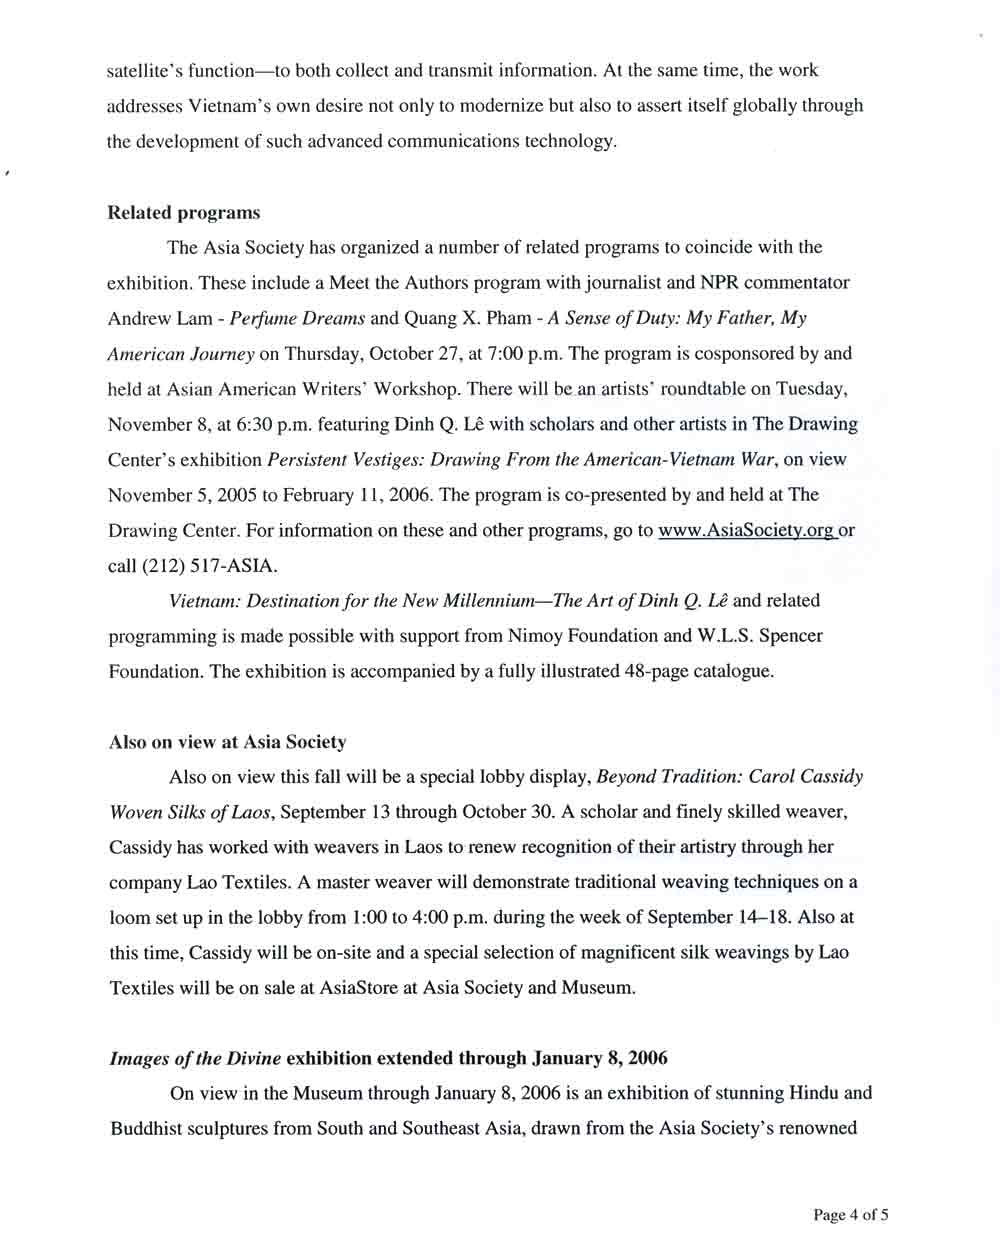 Vietnam: Destination press release, pg 4